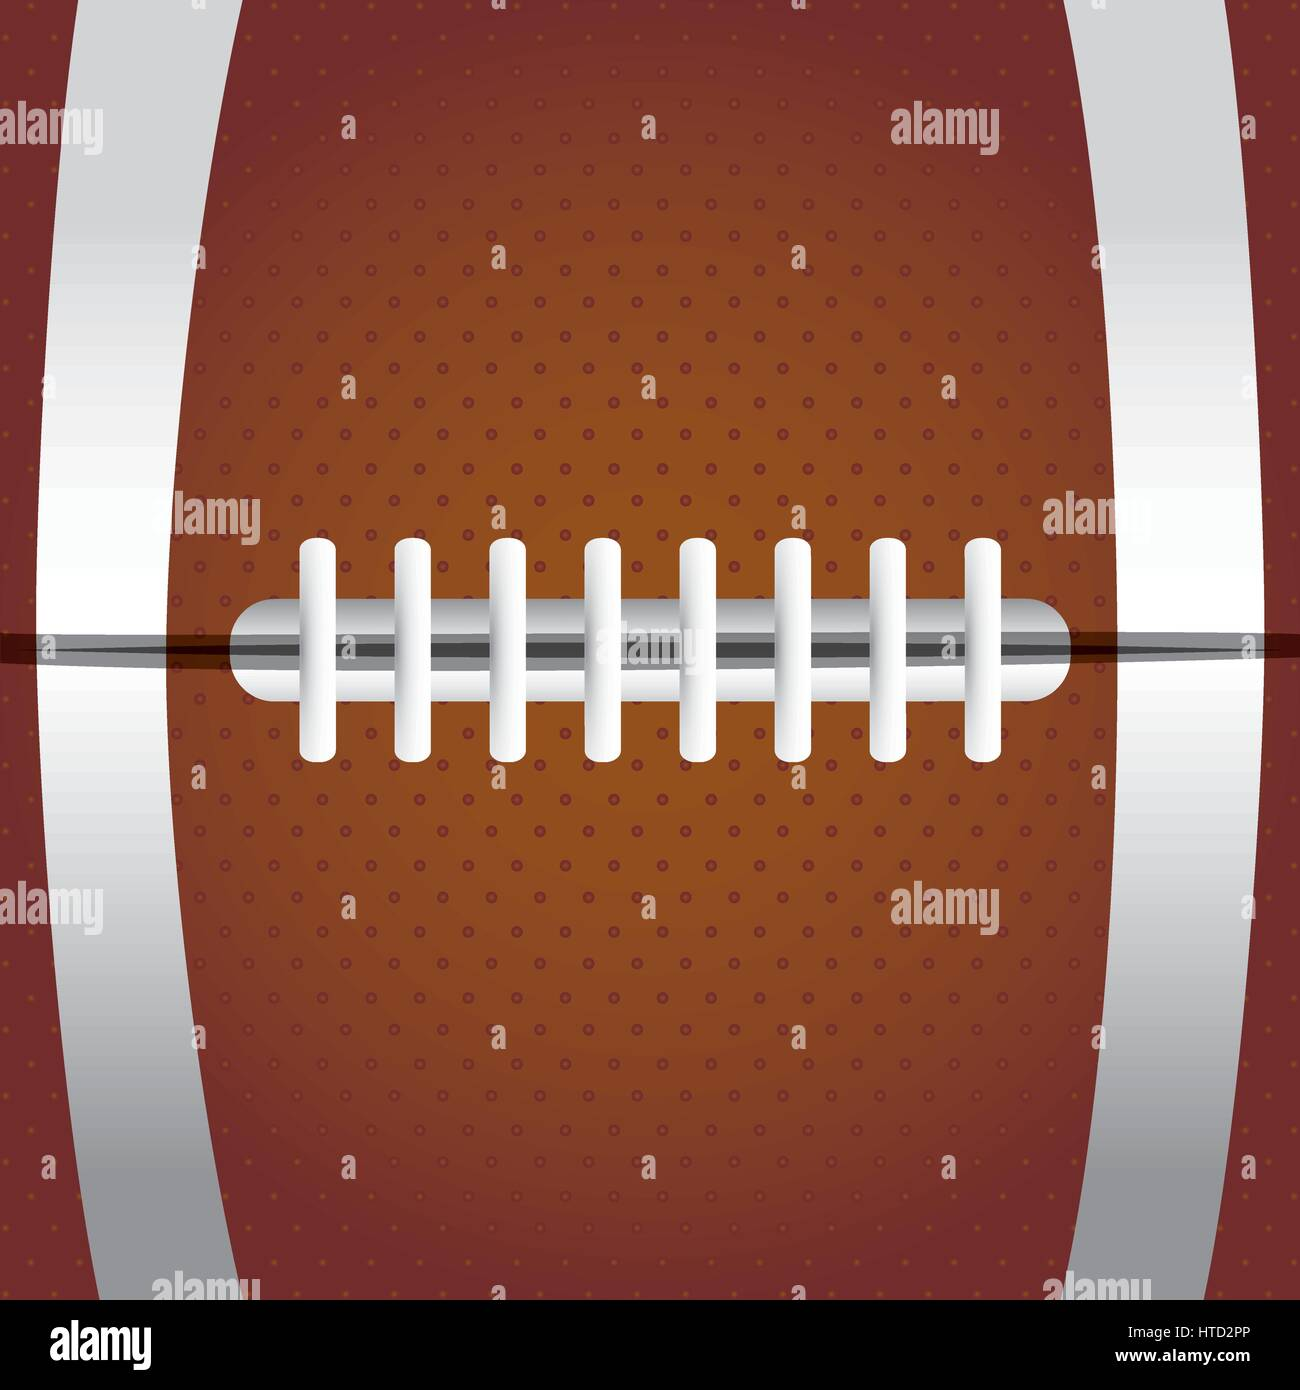 background with football ball texture - Stock Vector